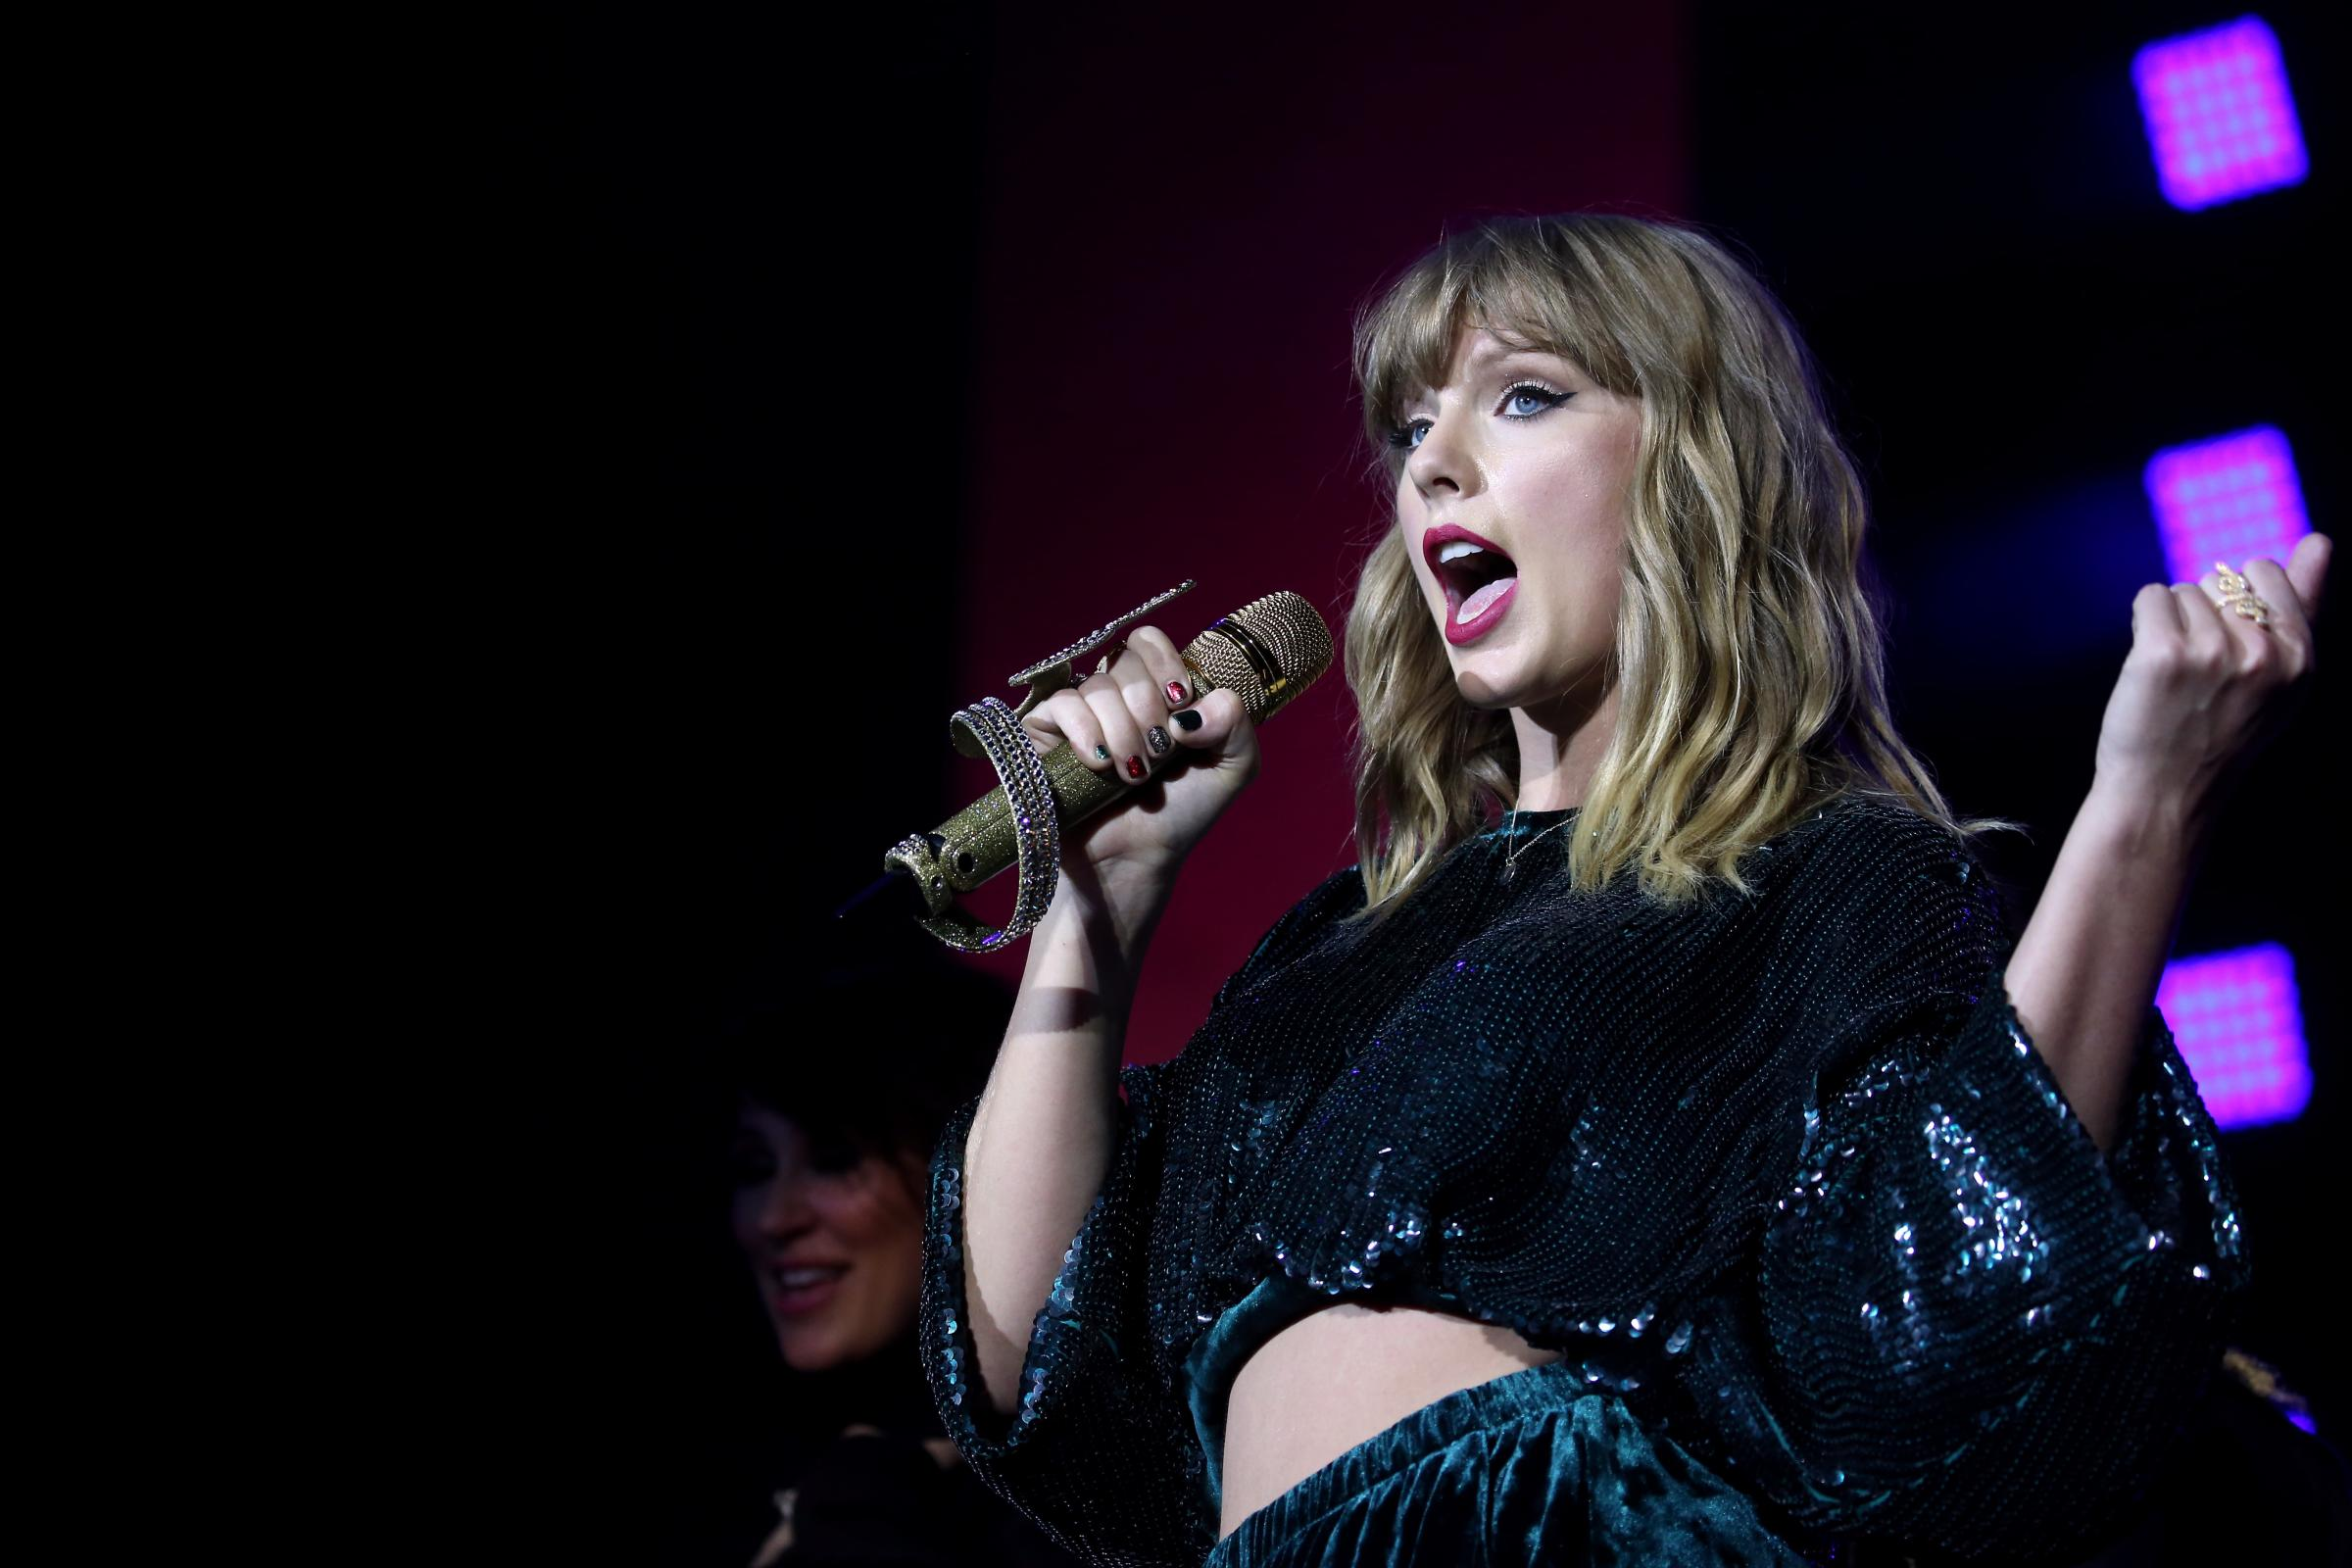 WIN: Tickets to see Taylor Swift at the Etihad in Manchester